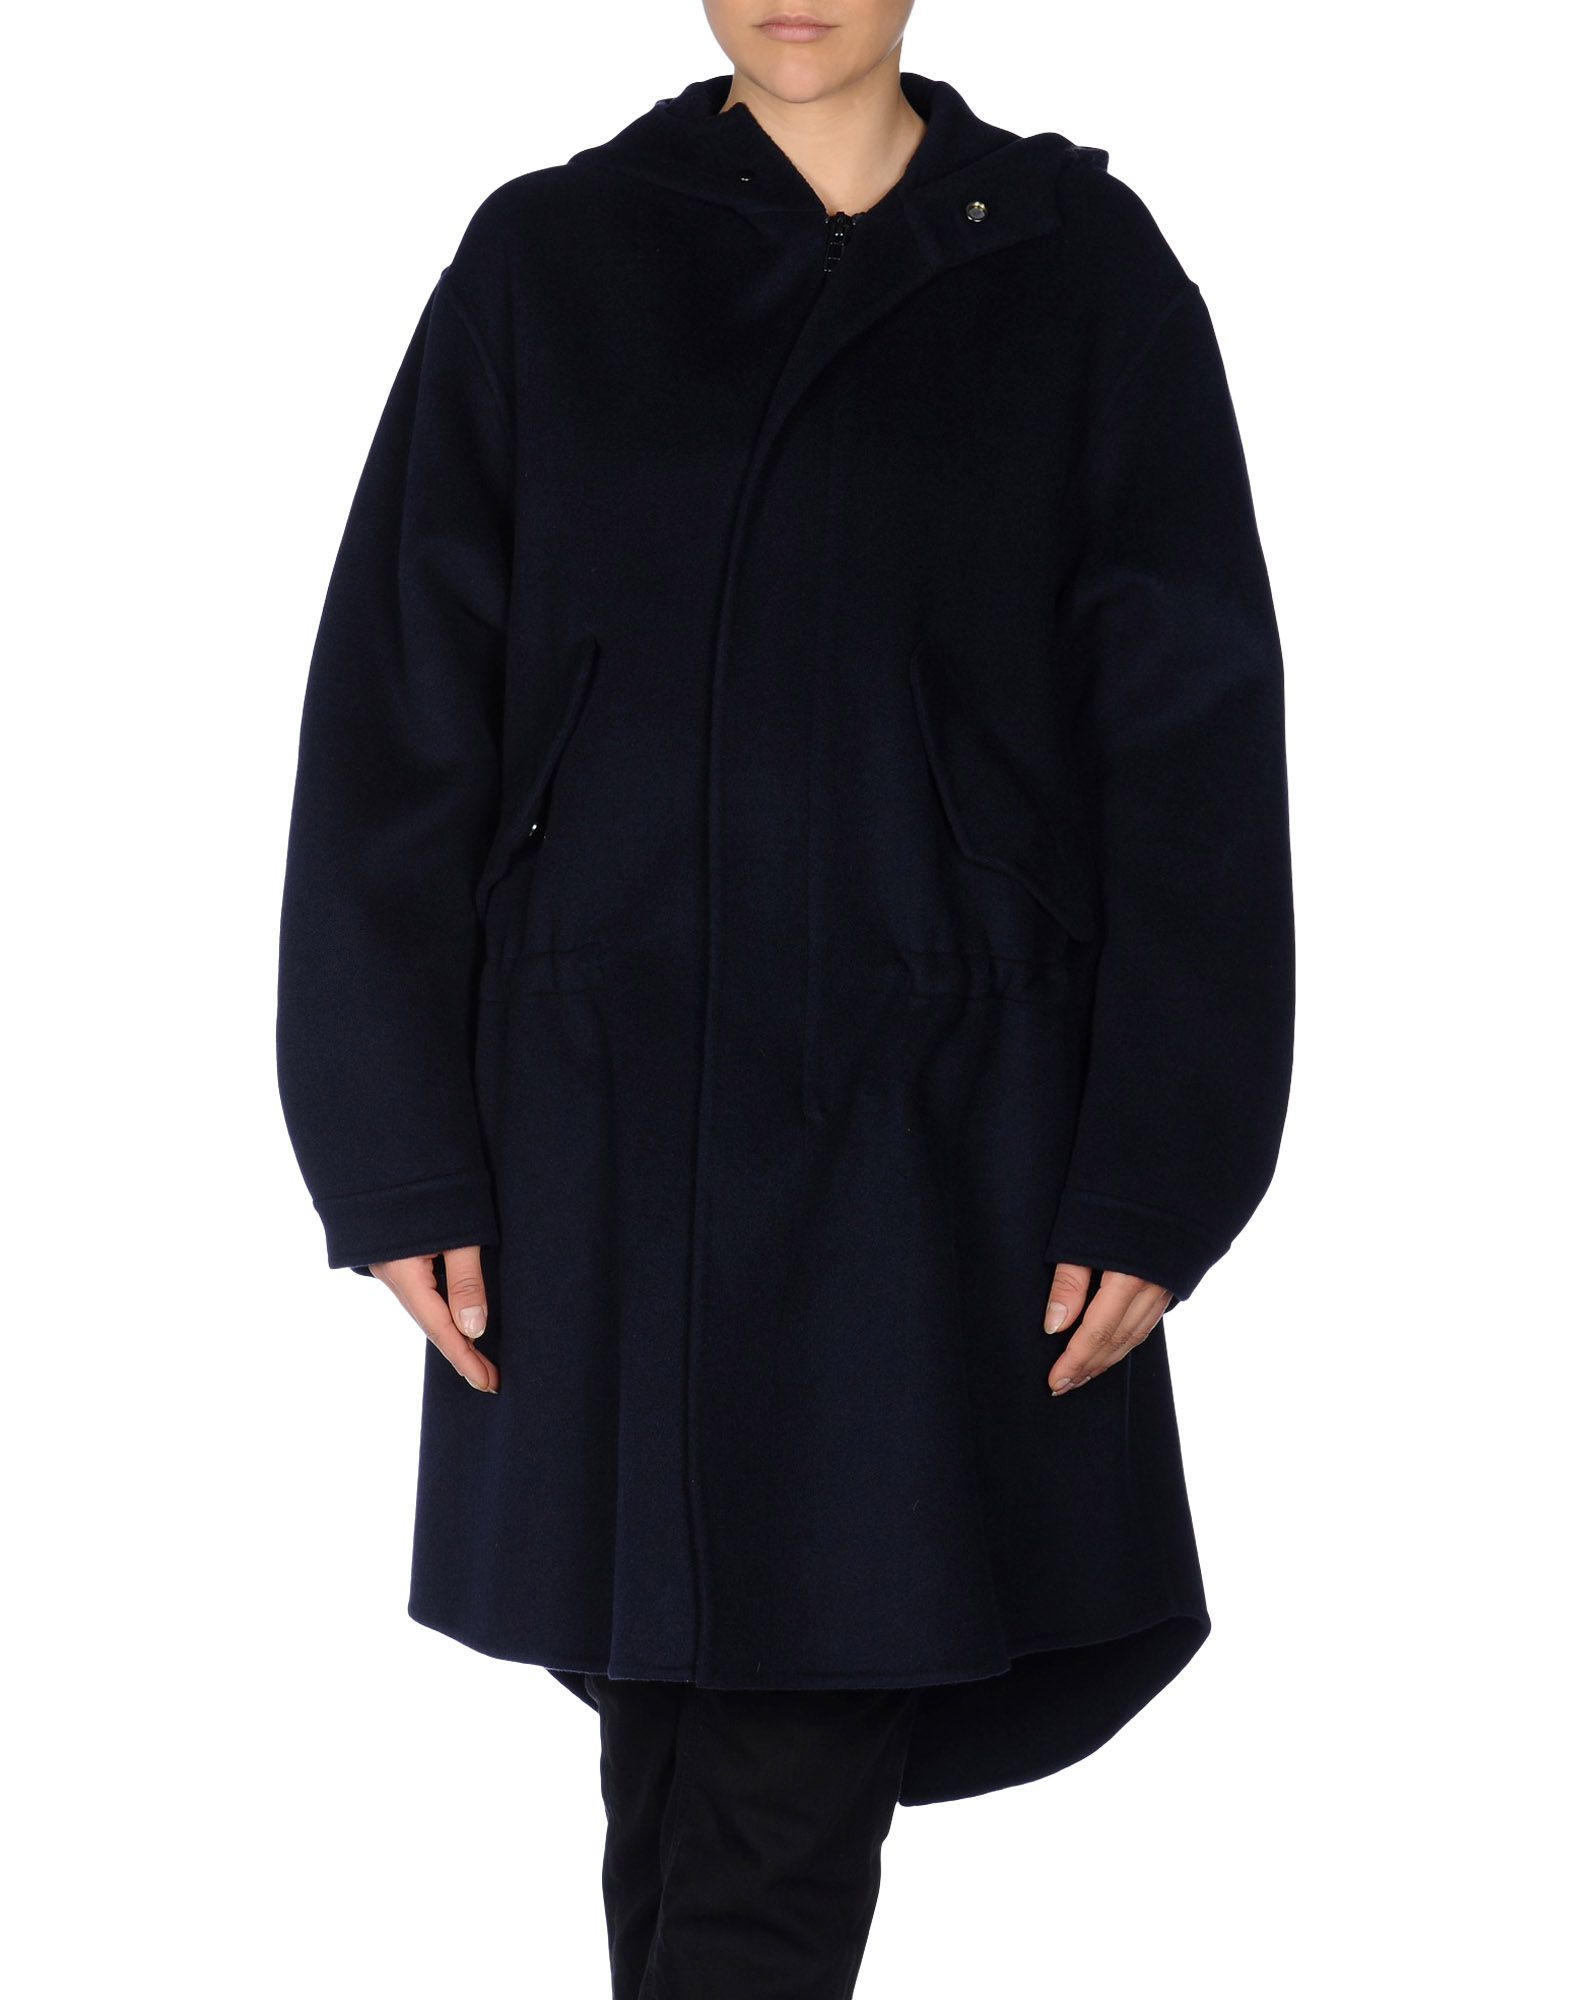 Lyst - Joseph Coat in Blue